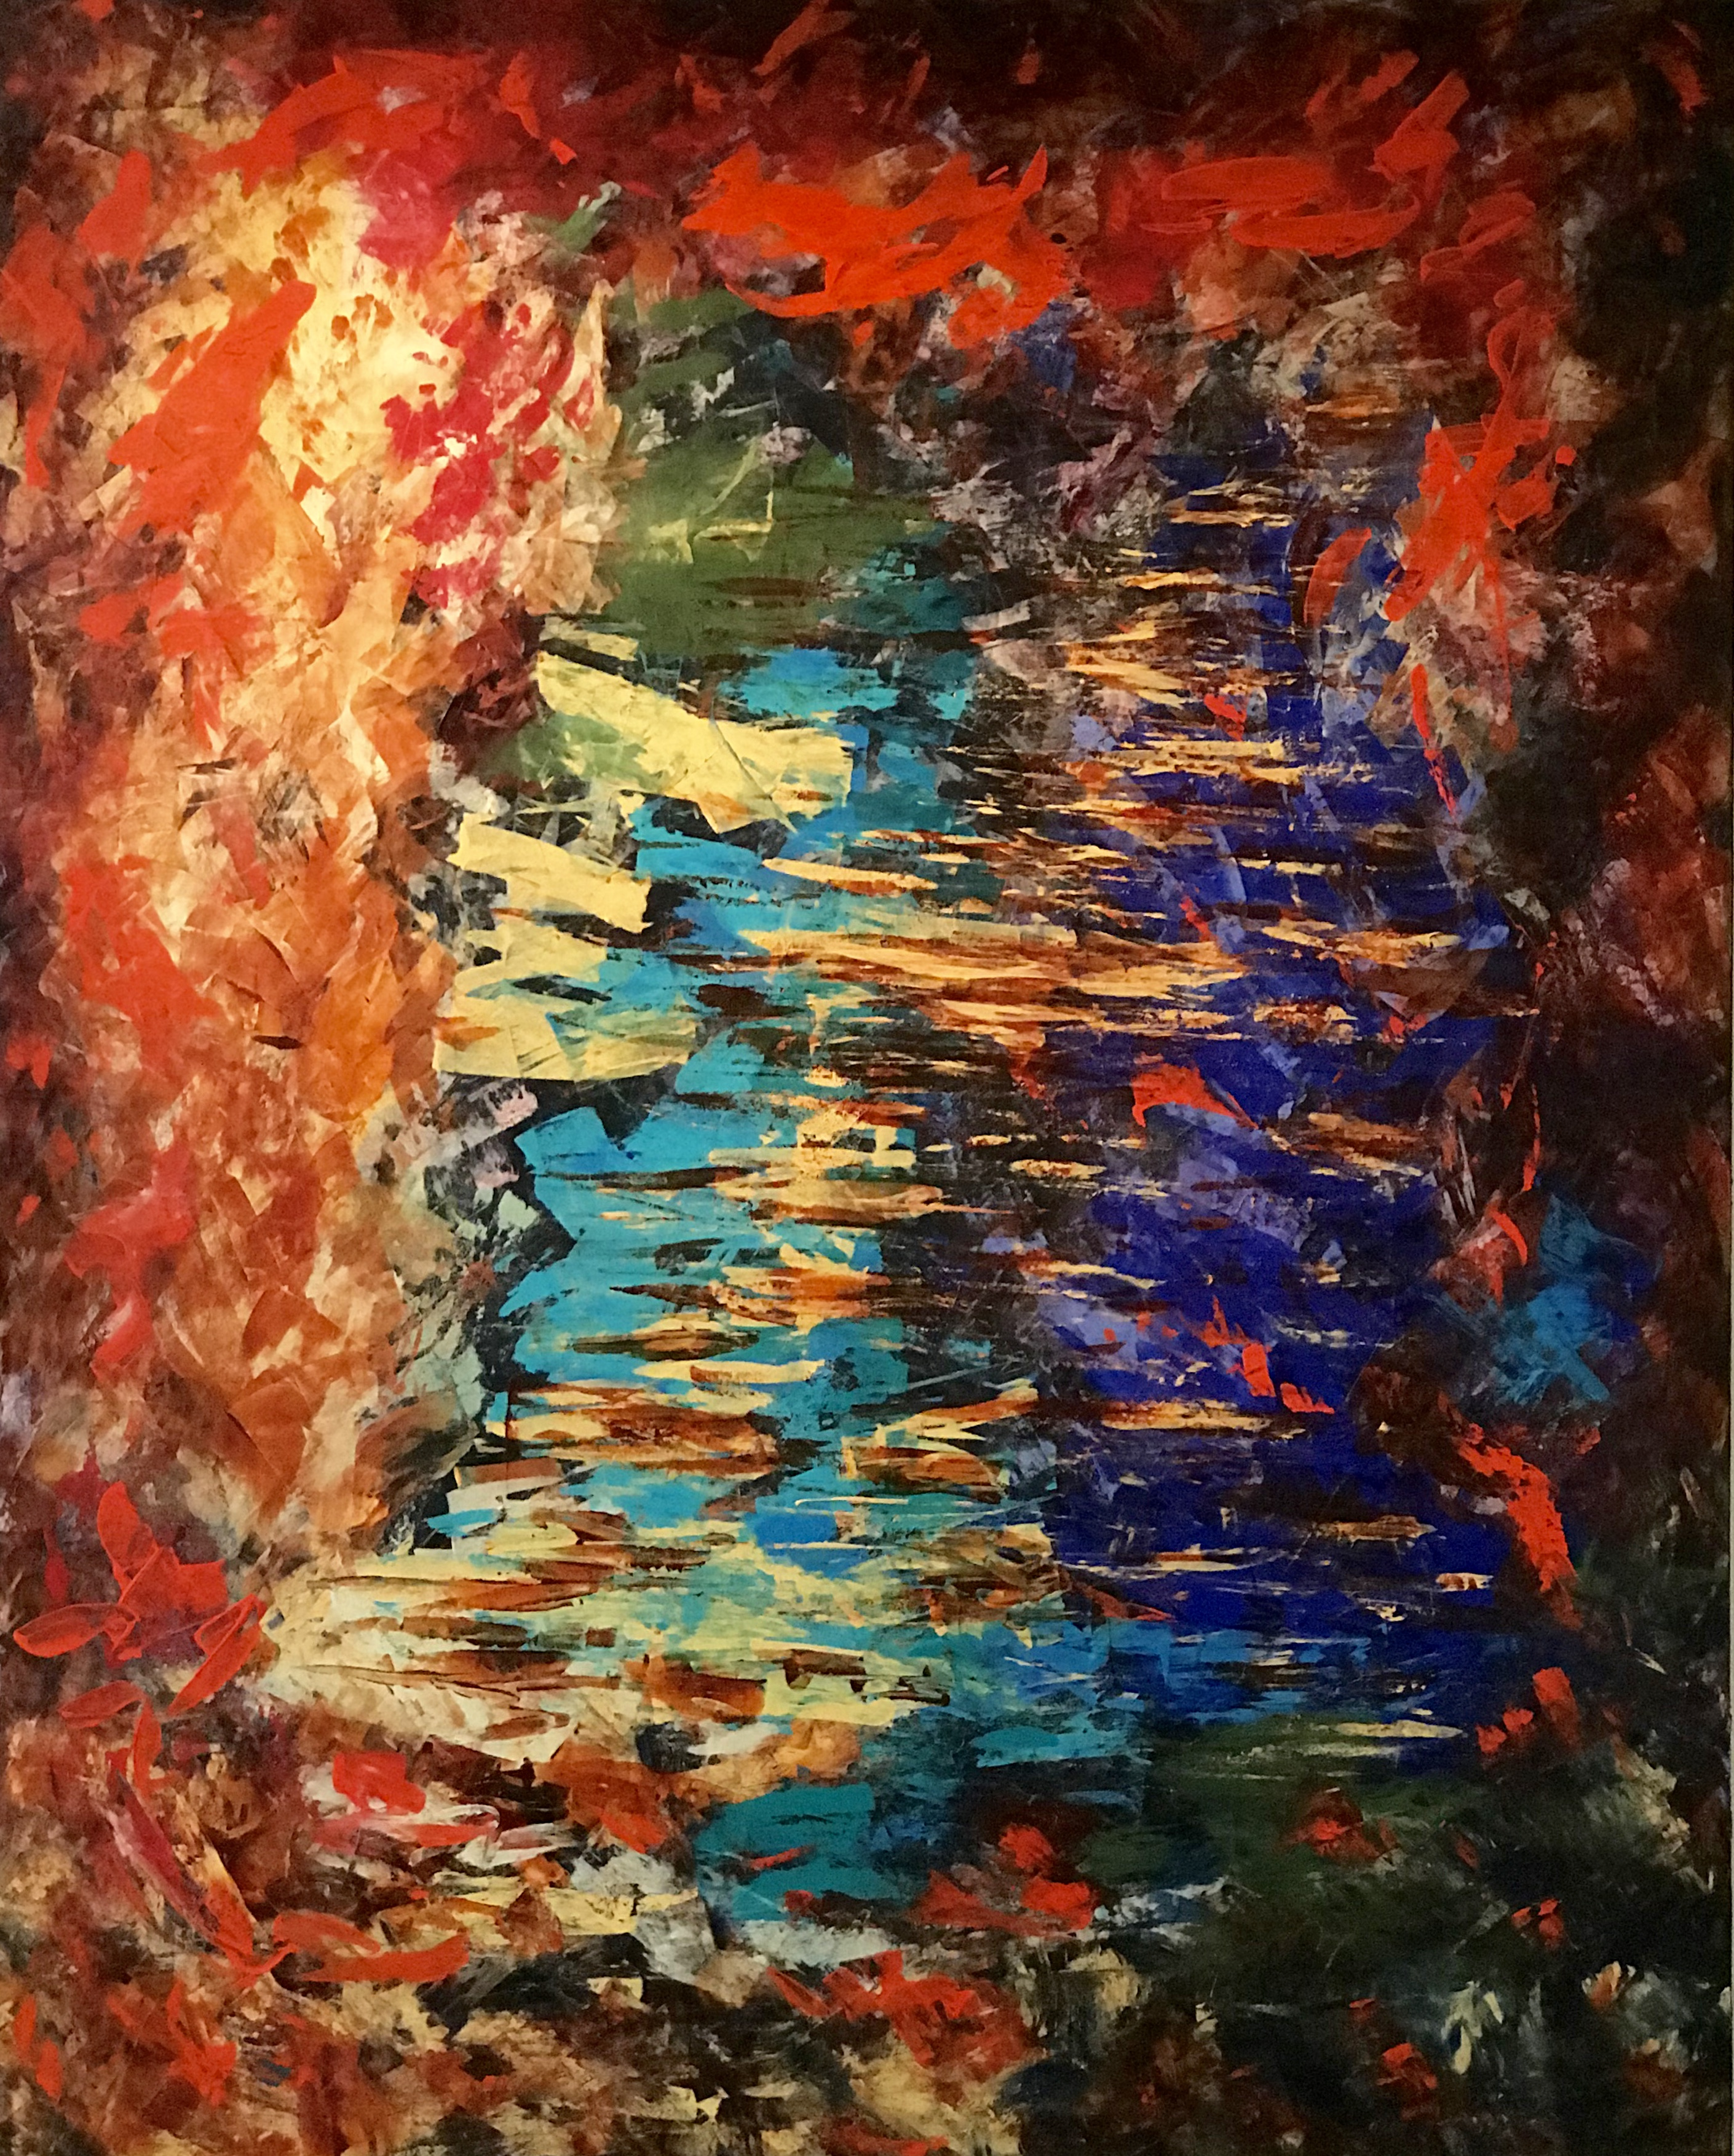 Big size Painting 152x122x4 cm